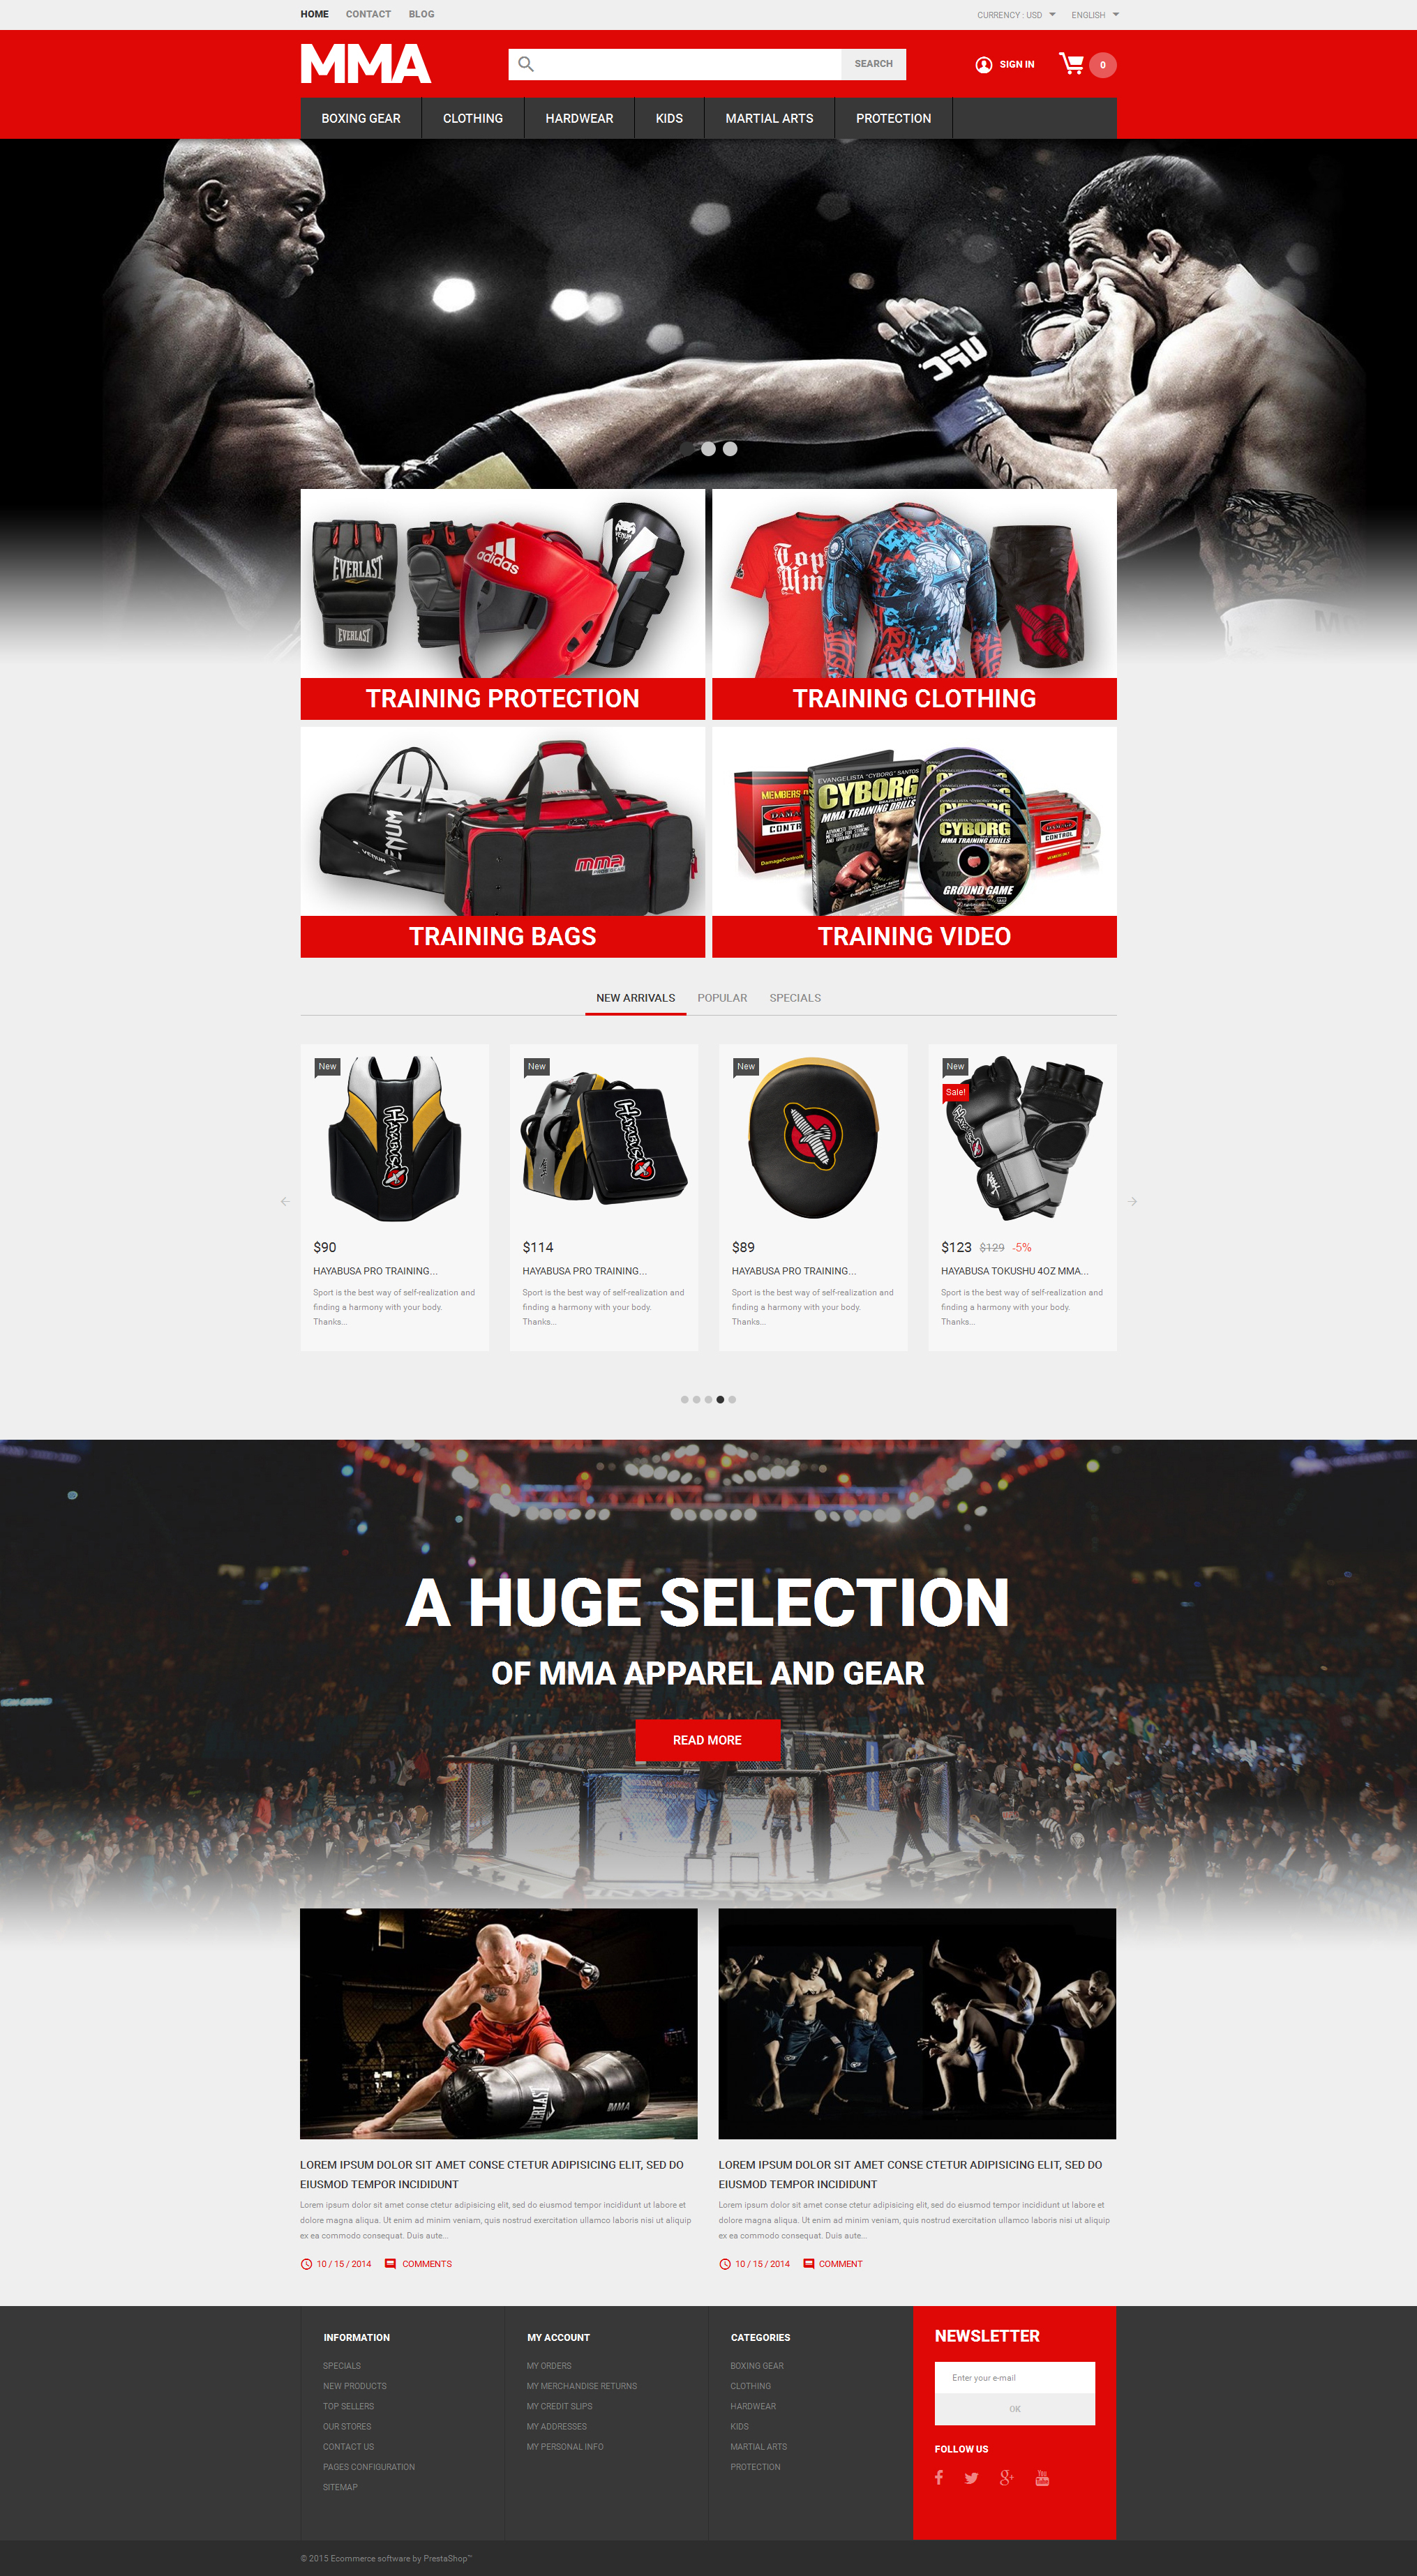 The MMA Store Store PrestaShop Design 53945, one of the best PrestaShop themes of its kind (sport, most popular), also known as MMA Store store PrestaShop template, athletic PrestaShop template, equipment PrestaShop template, training PrestaShop template, clothes PrestaShop template, extreme PrestaShop template, weight PrestaShop template, boxing PrestaShop template, cycling PrestaShop template, vitamins PrestaShop template, collection PrestaShop template, product PrestaShop template, arrivals PrestaShop template, collection PrestaShop template, fishing PrestaShop template, golf PrestaShop template, darts PrestaShop template, reviews PrestaShop template, products PrestaShop template, manufactures PrestaShop template, winter PrestaShop template, summer PrestaShop template, difficult PrestaShop template, pleasant and related with MMA Store store, athletic, equipment, training, clothes, extreme, weight, boxing, cycling, vitamins, collection, product, arrivals, collection, fishing, golf, darts, reviews, products, manufactures, winter, summer, difficult, pleasant, etc.